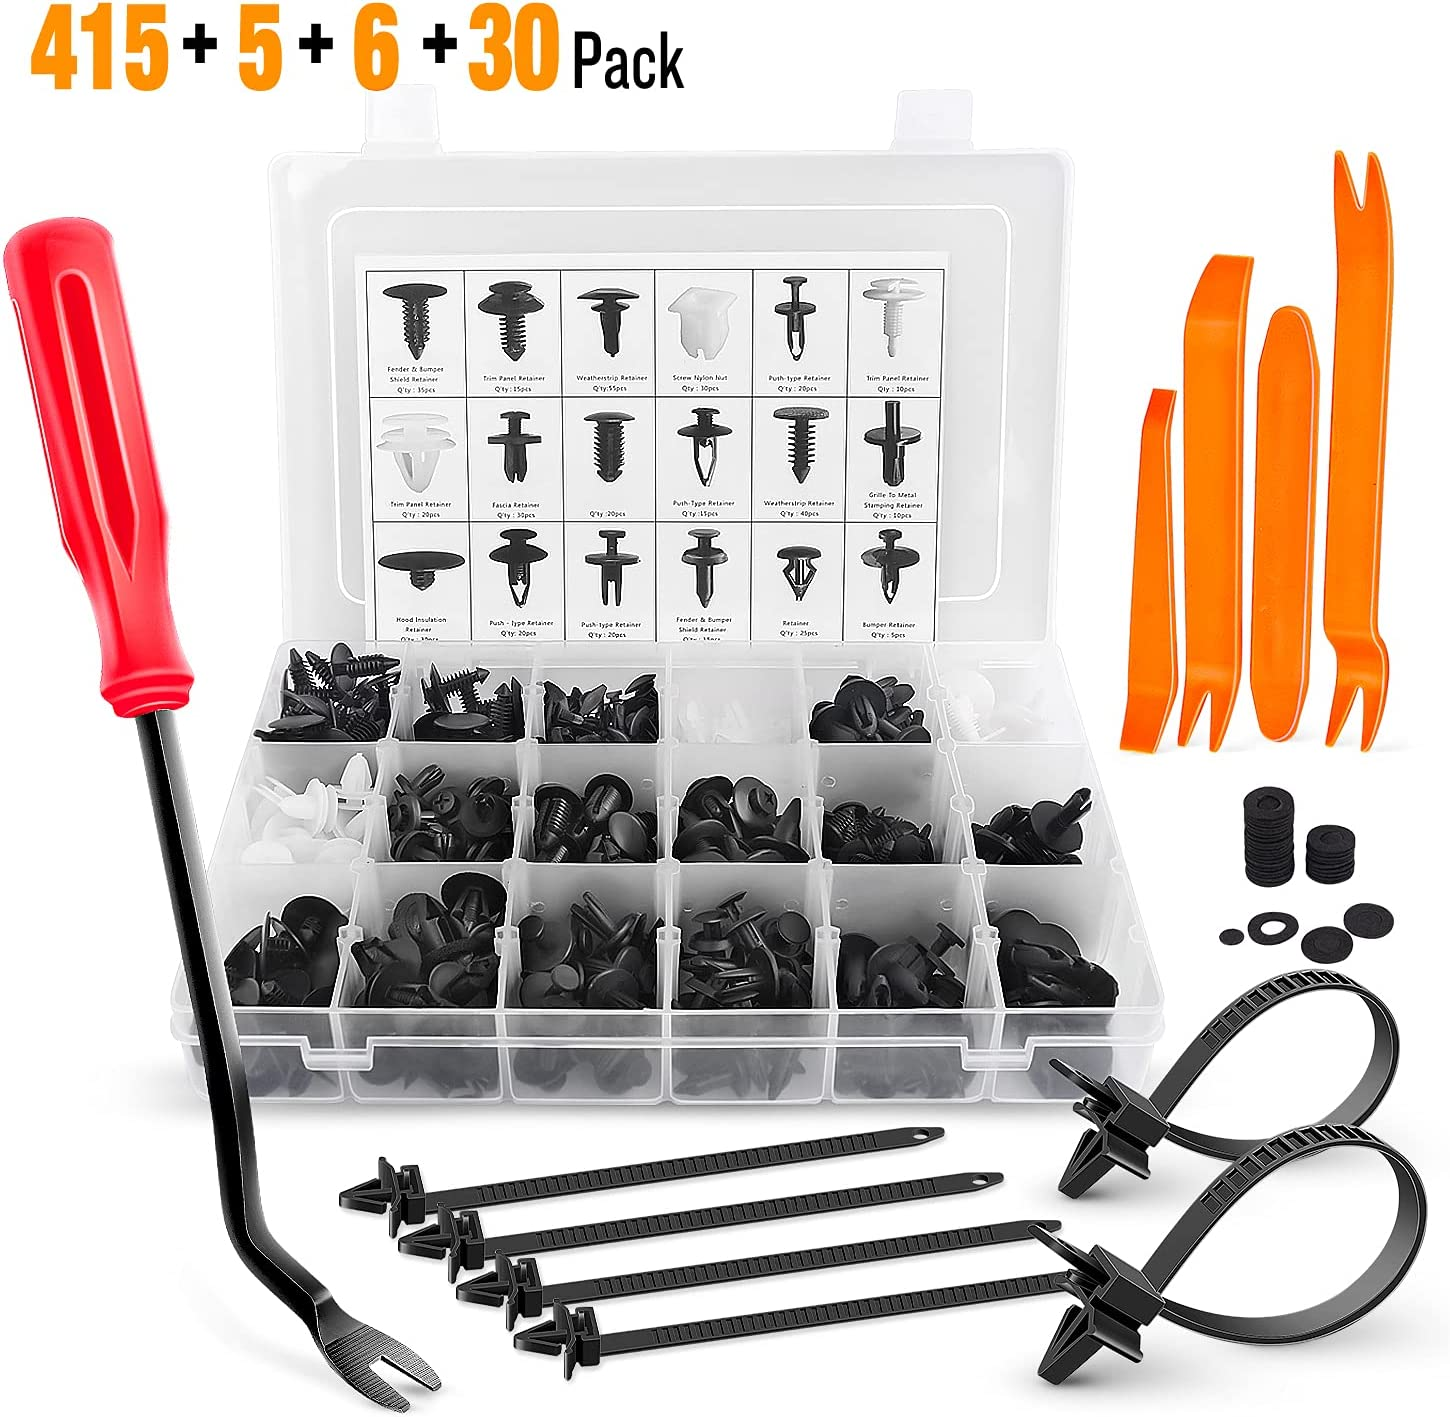 GOOACC 415 Pcs Car Retainer National uniform free shipping Clips Discount is also underway Most - P 18 Remover Fastener